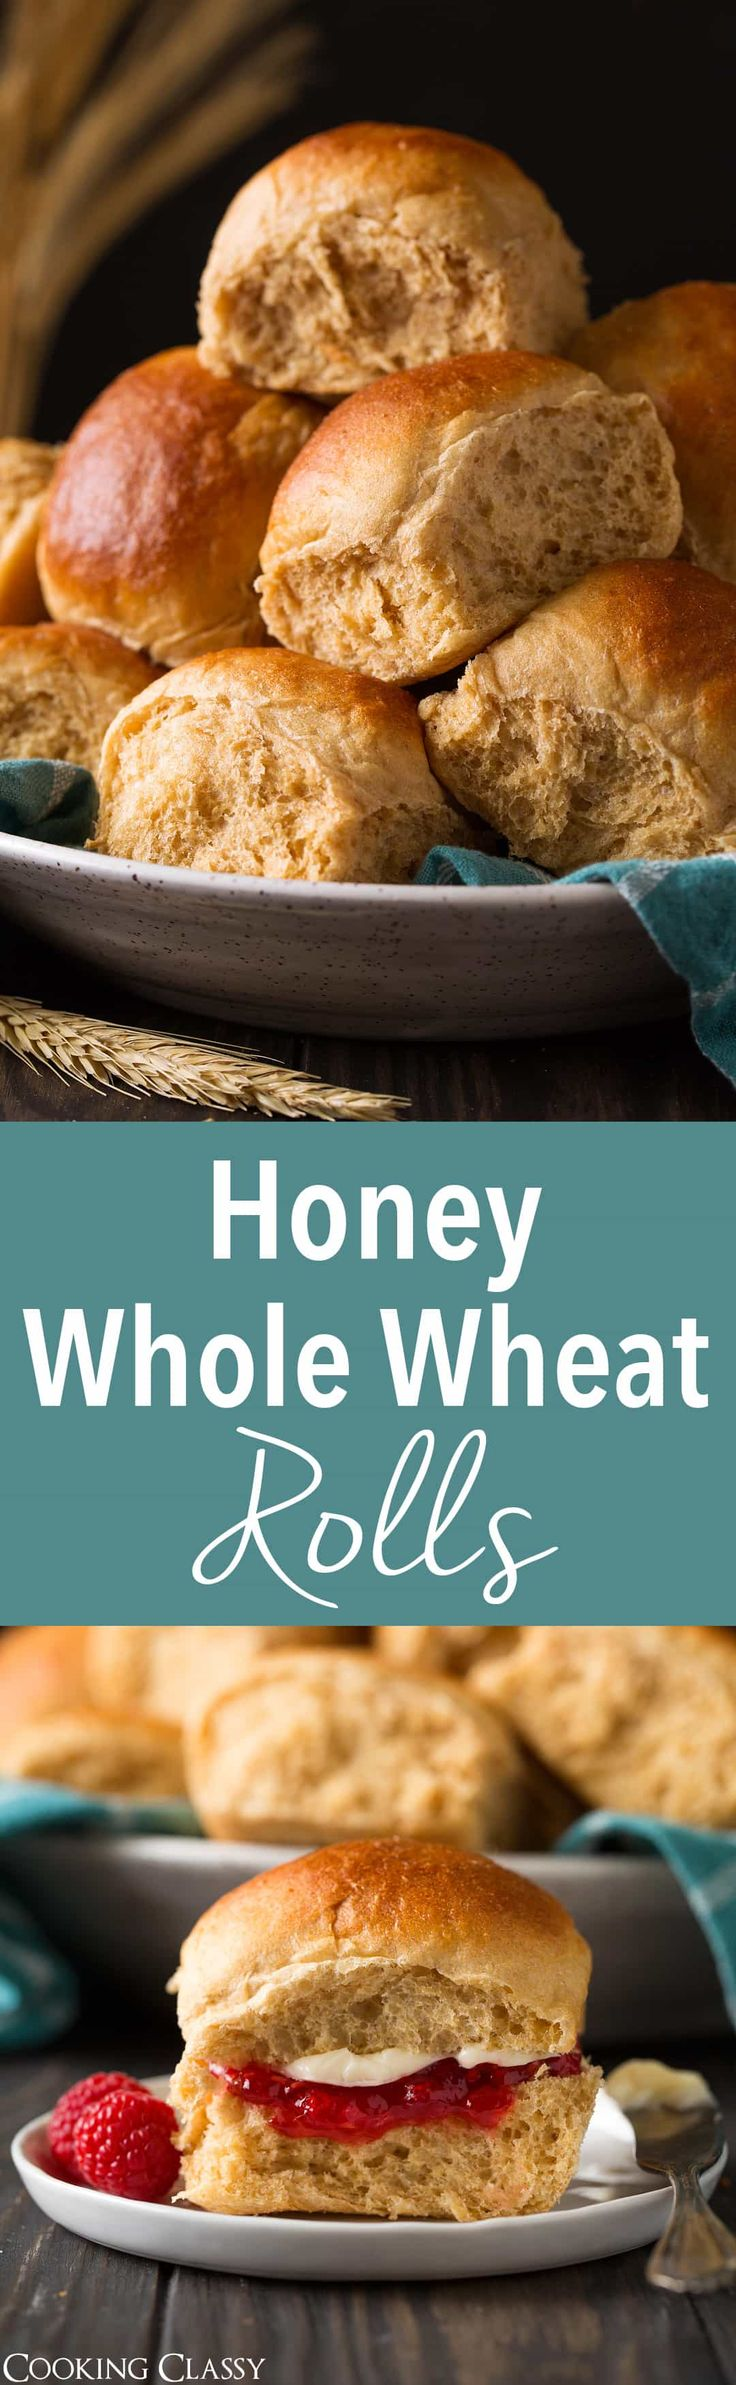 Honey Whole Wheat Rolls - Soft and fluffy rolls made from 100% whole wheat flour. Delicious with homemade freezer jam and a generous slathering of butter. via @cookingclassy #wheat #rolls #thanksgiving #recipe